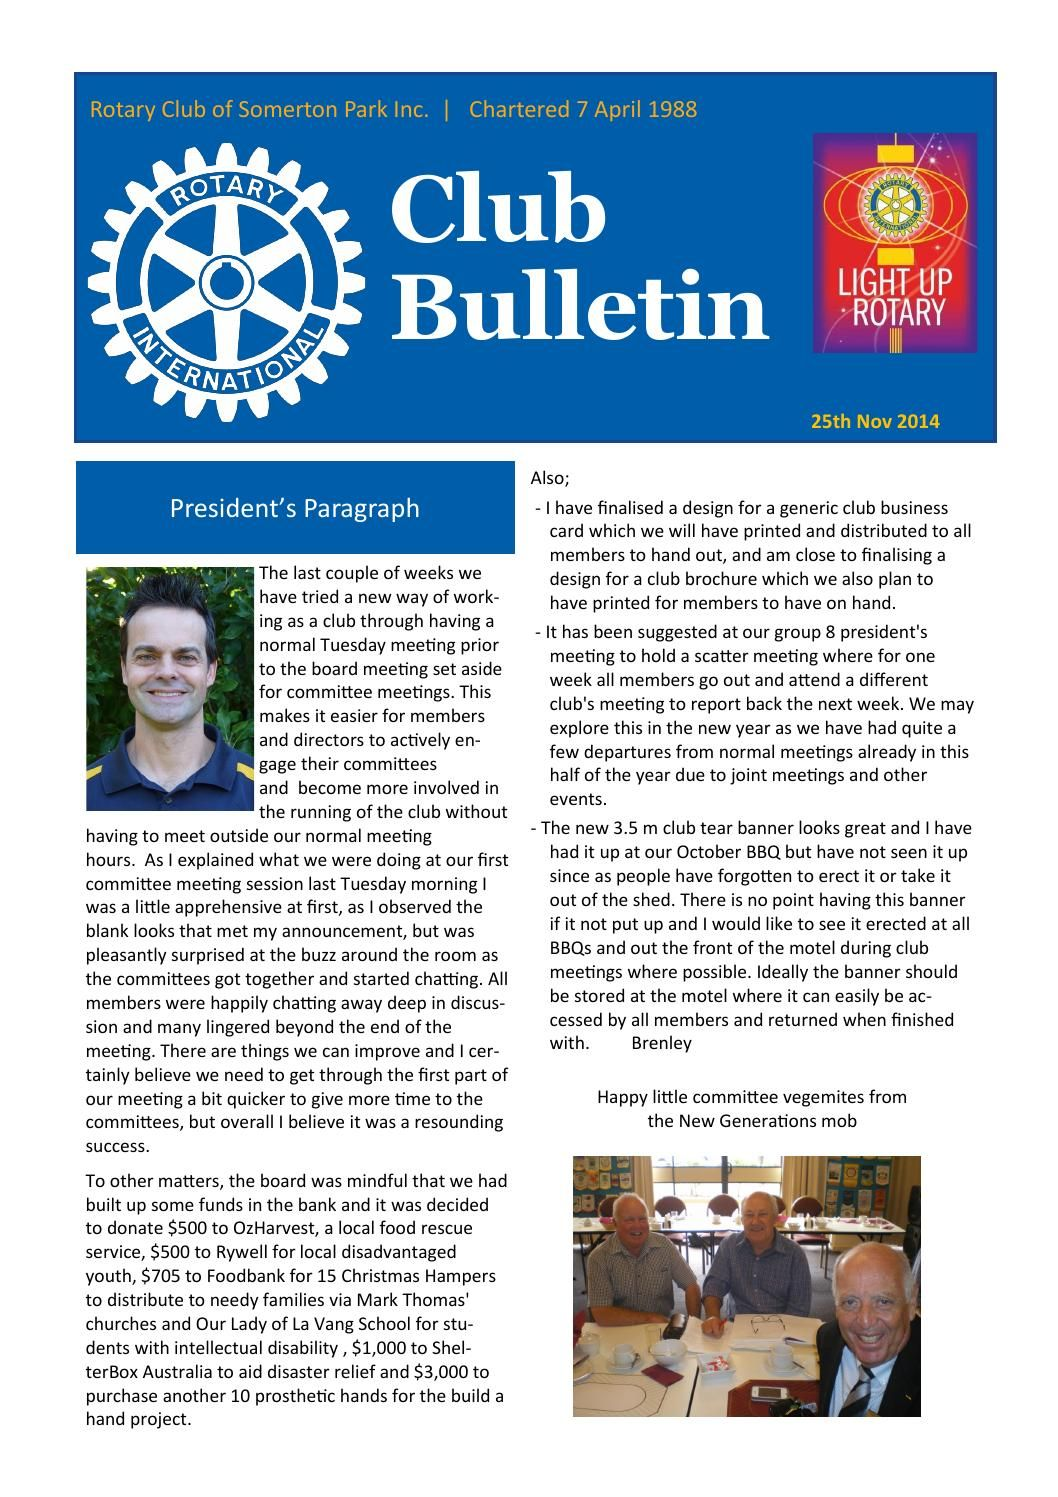 Bulletin Template | Rotary Club Of Somerton Park Bulletin 25 11 2014 Newspaper And Park